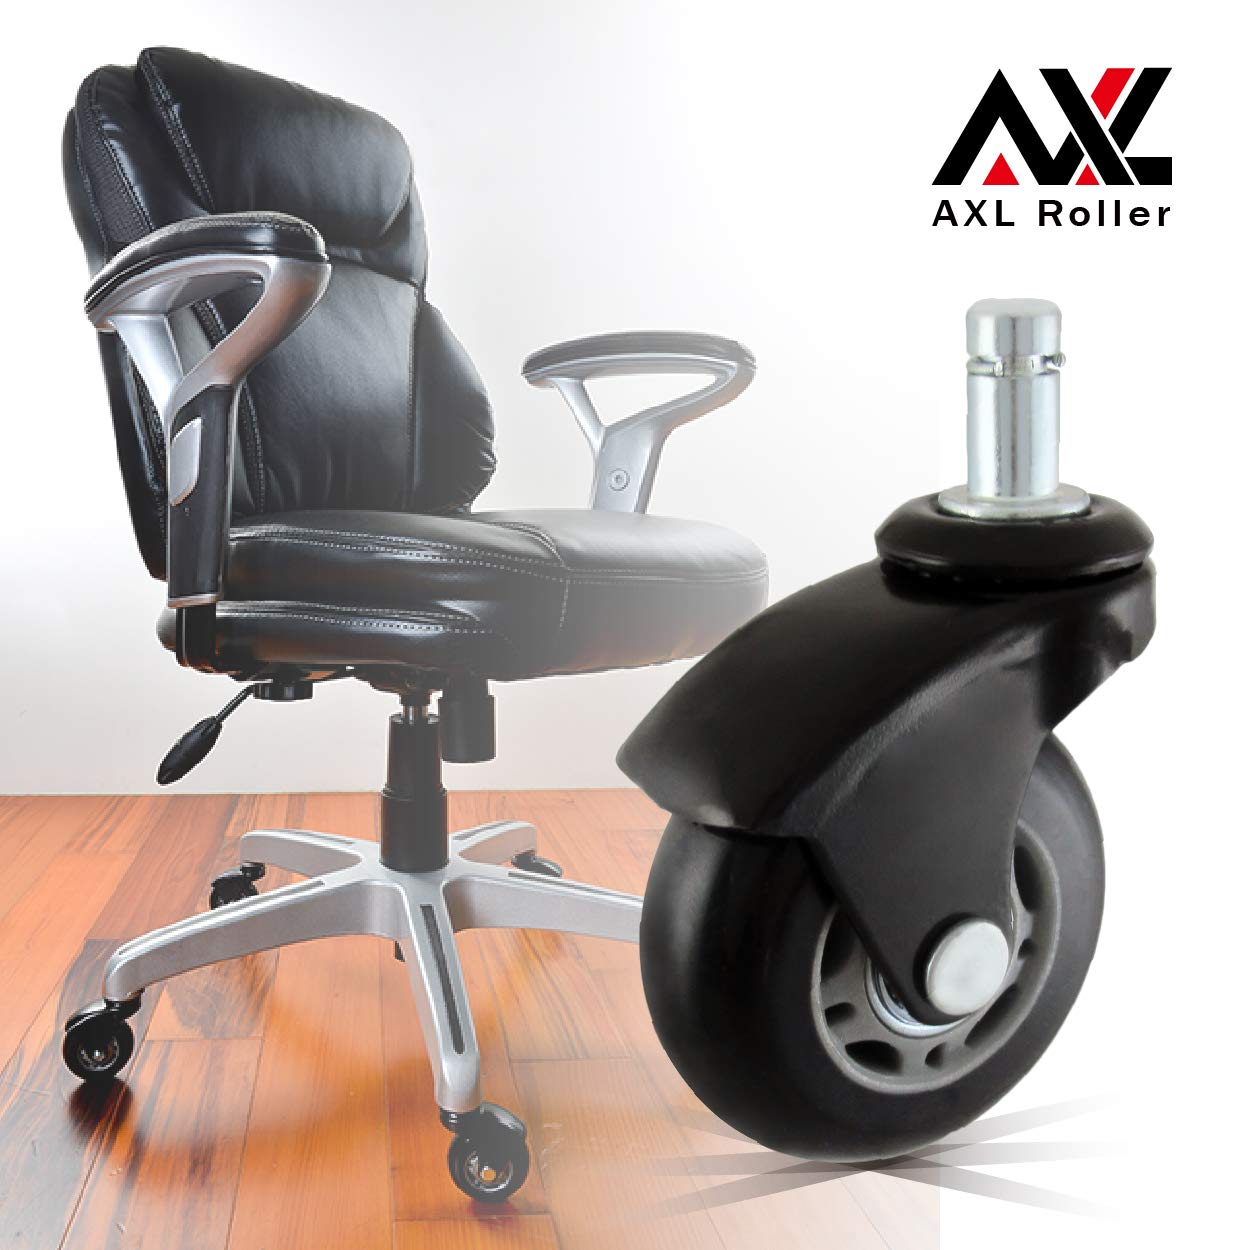 AXL 2.5 inch Office Chair Caster Wheel Replacement for Rollerblade Wheels Heavy Duty Casters for Hardwood Floors Safe (Black, Normal 11mm)